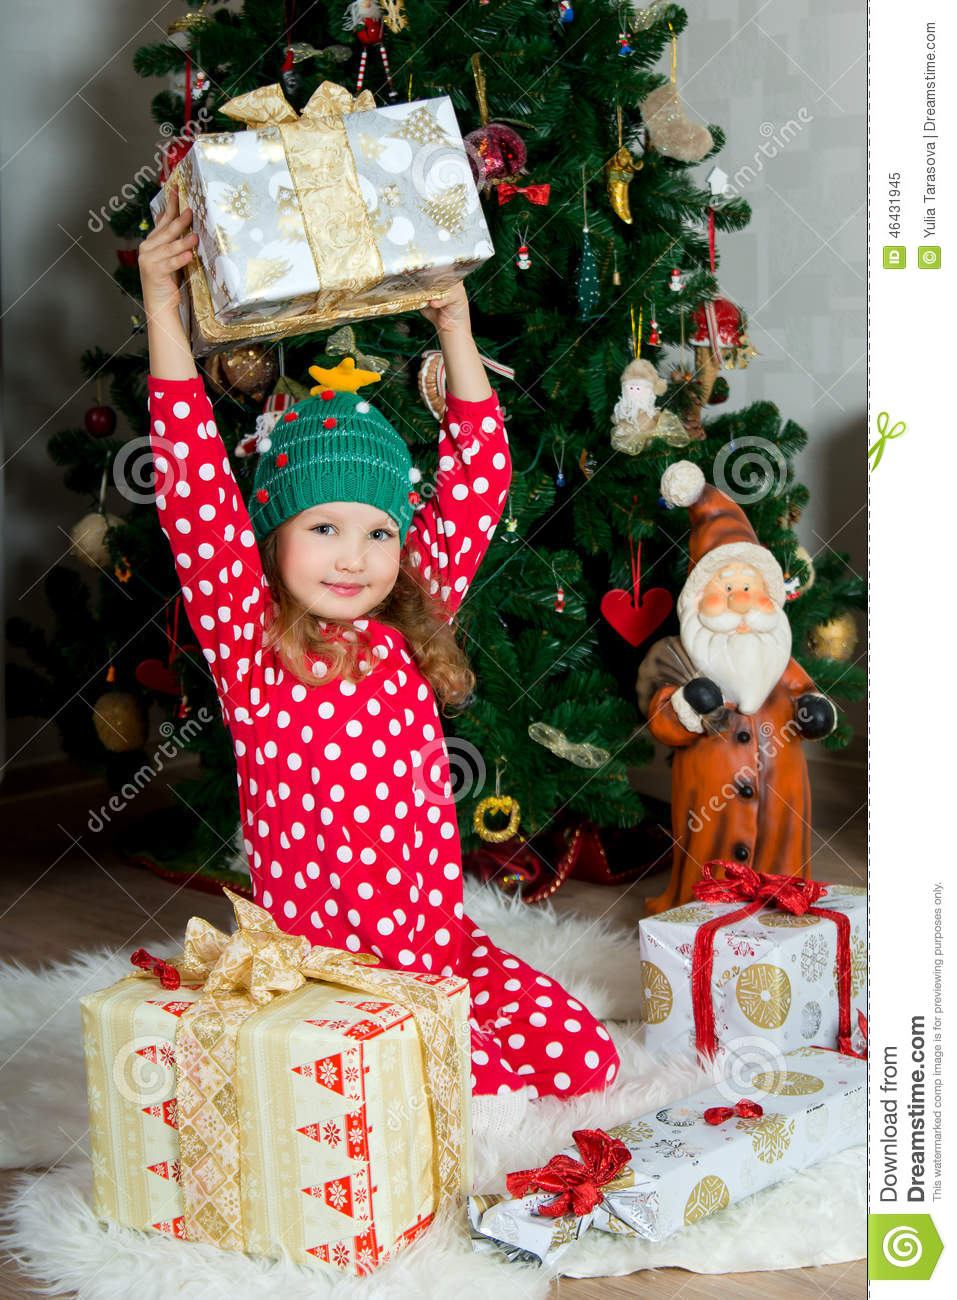 Christmas gift ideas for godparents